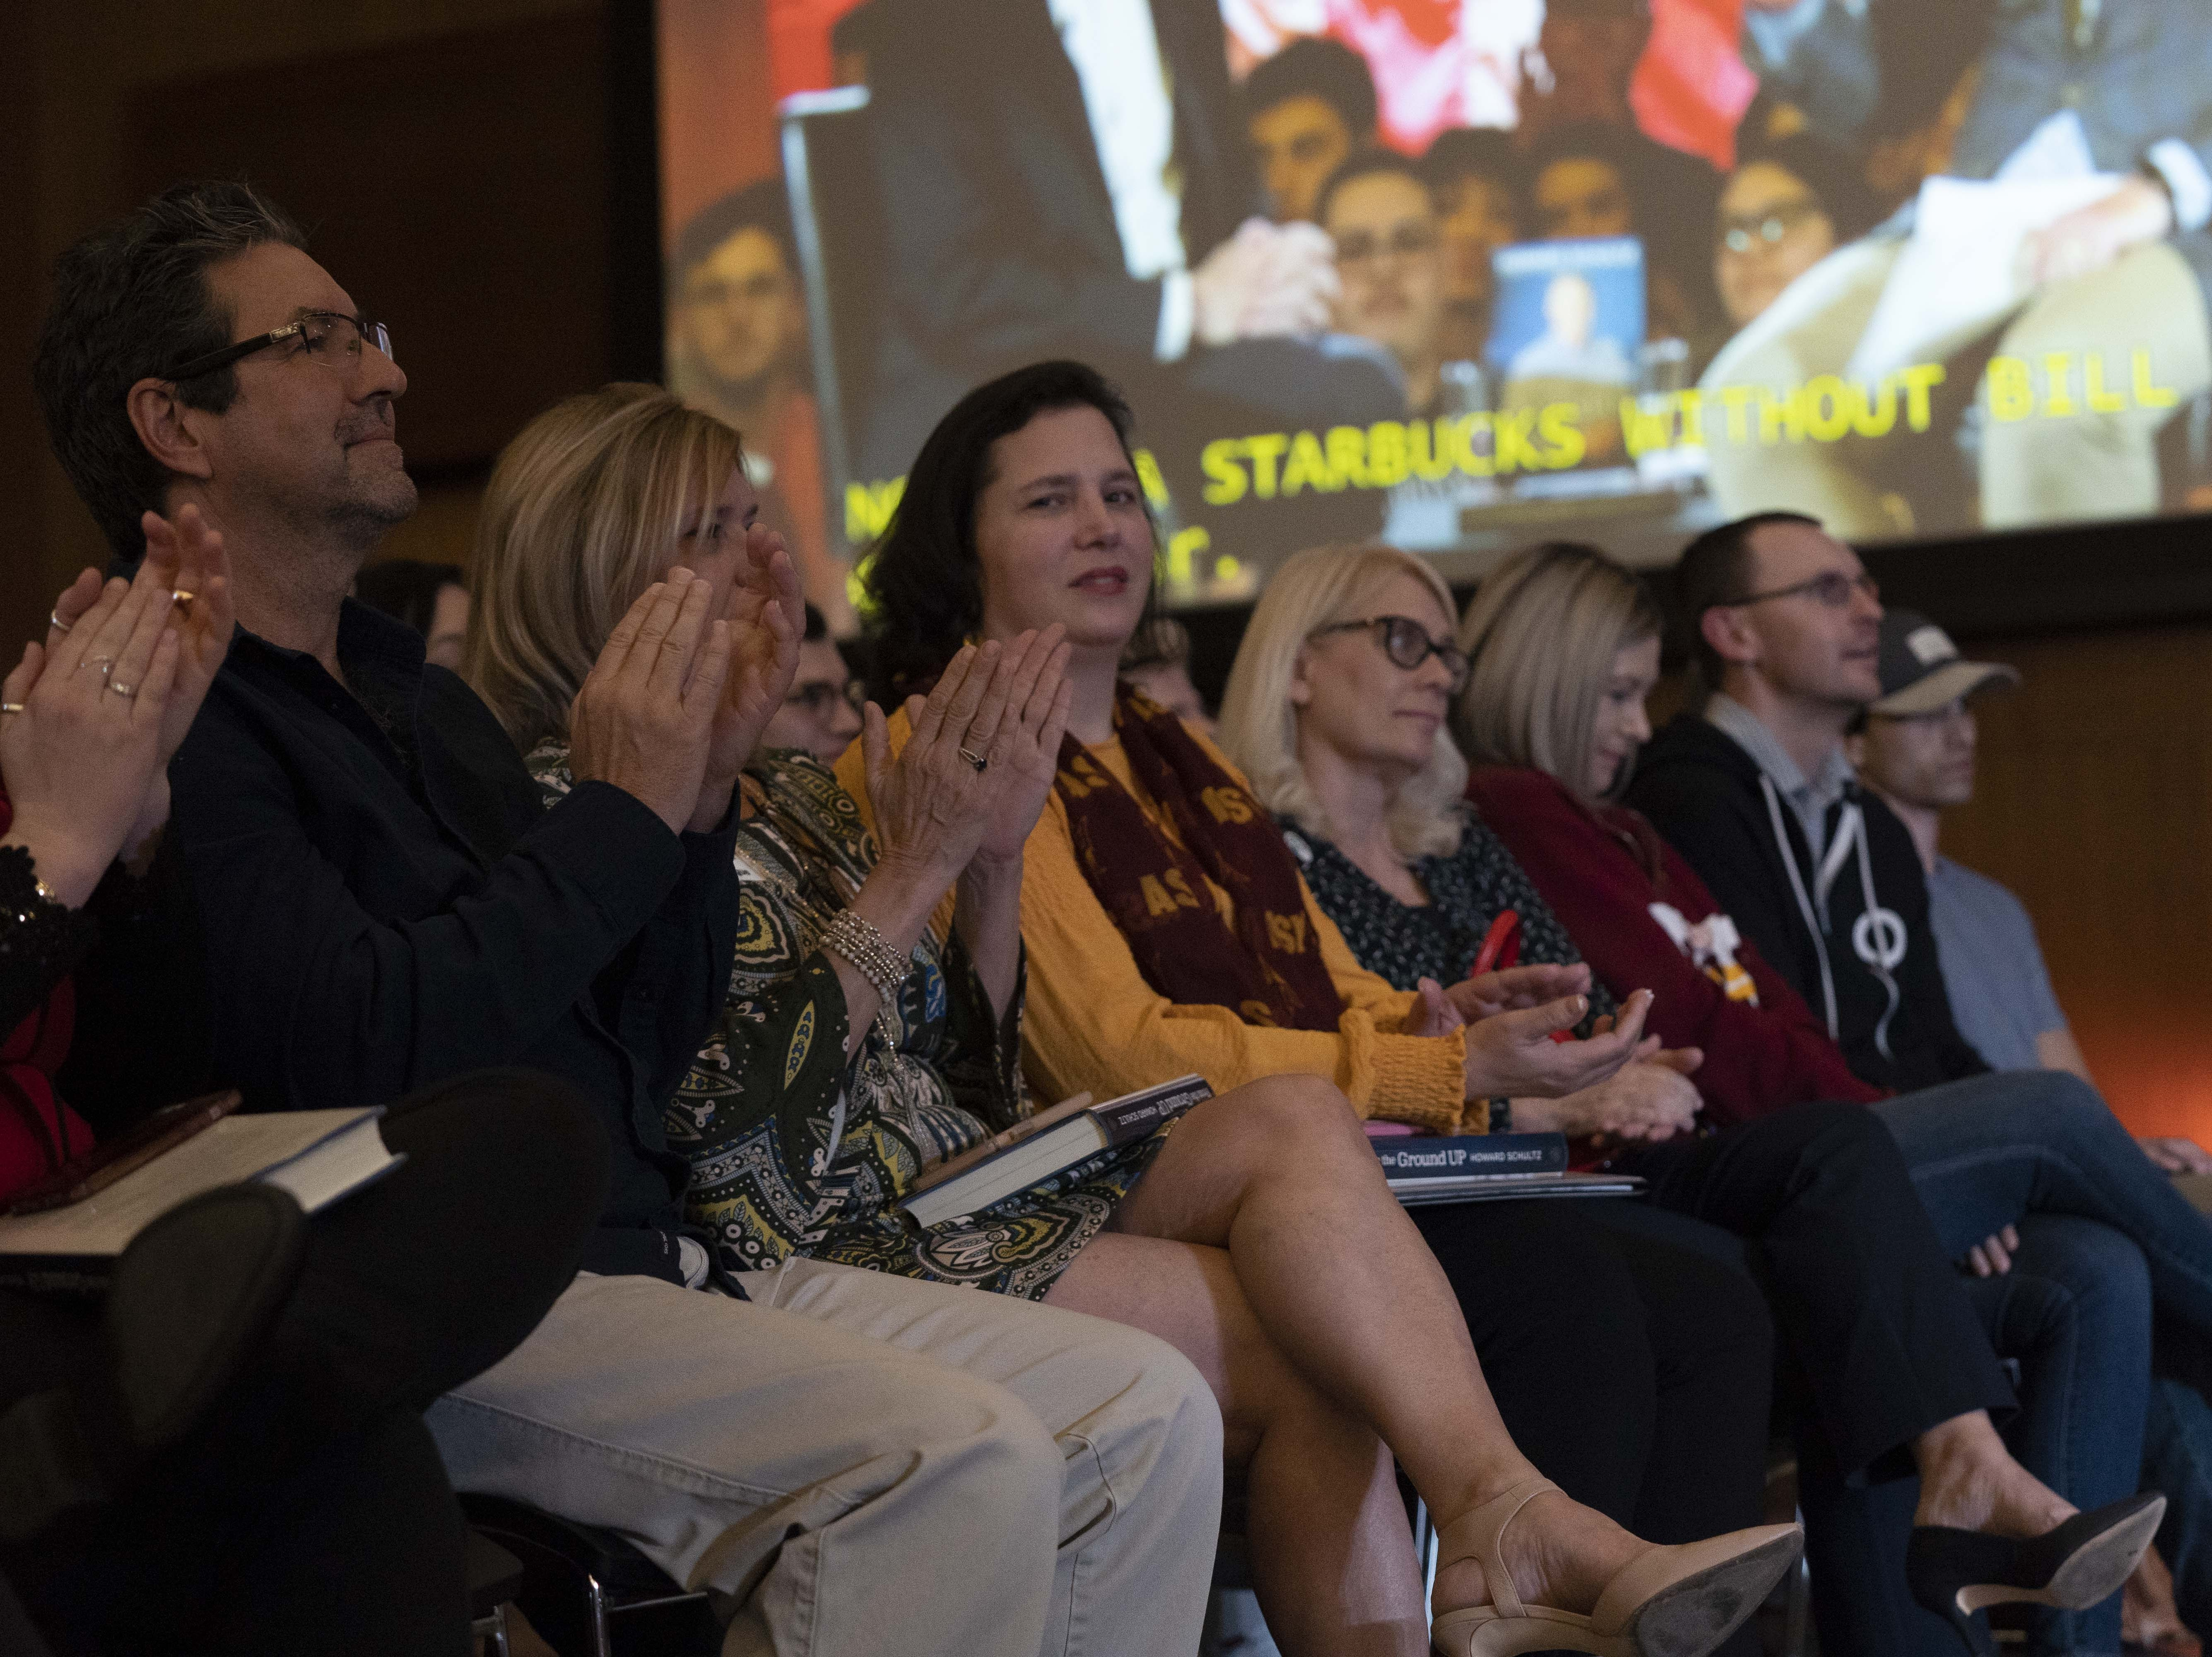 People listen as former Starbucks CEO Howard Schultz holds a town hall with Arizona State University President Michael Crow on Jan. 30, 2019.